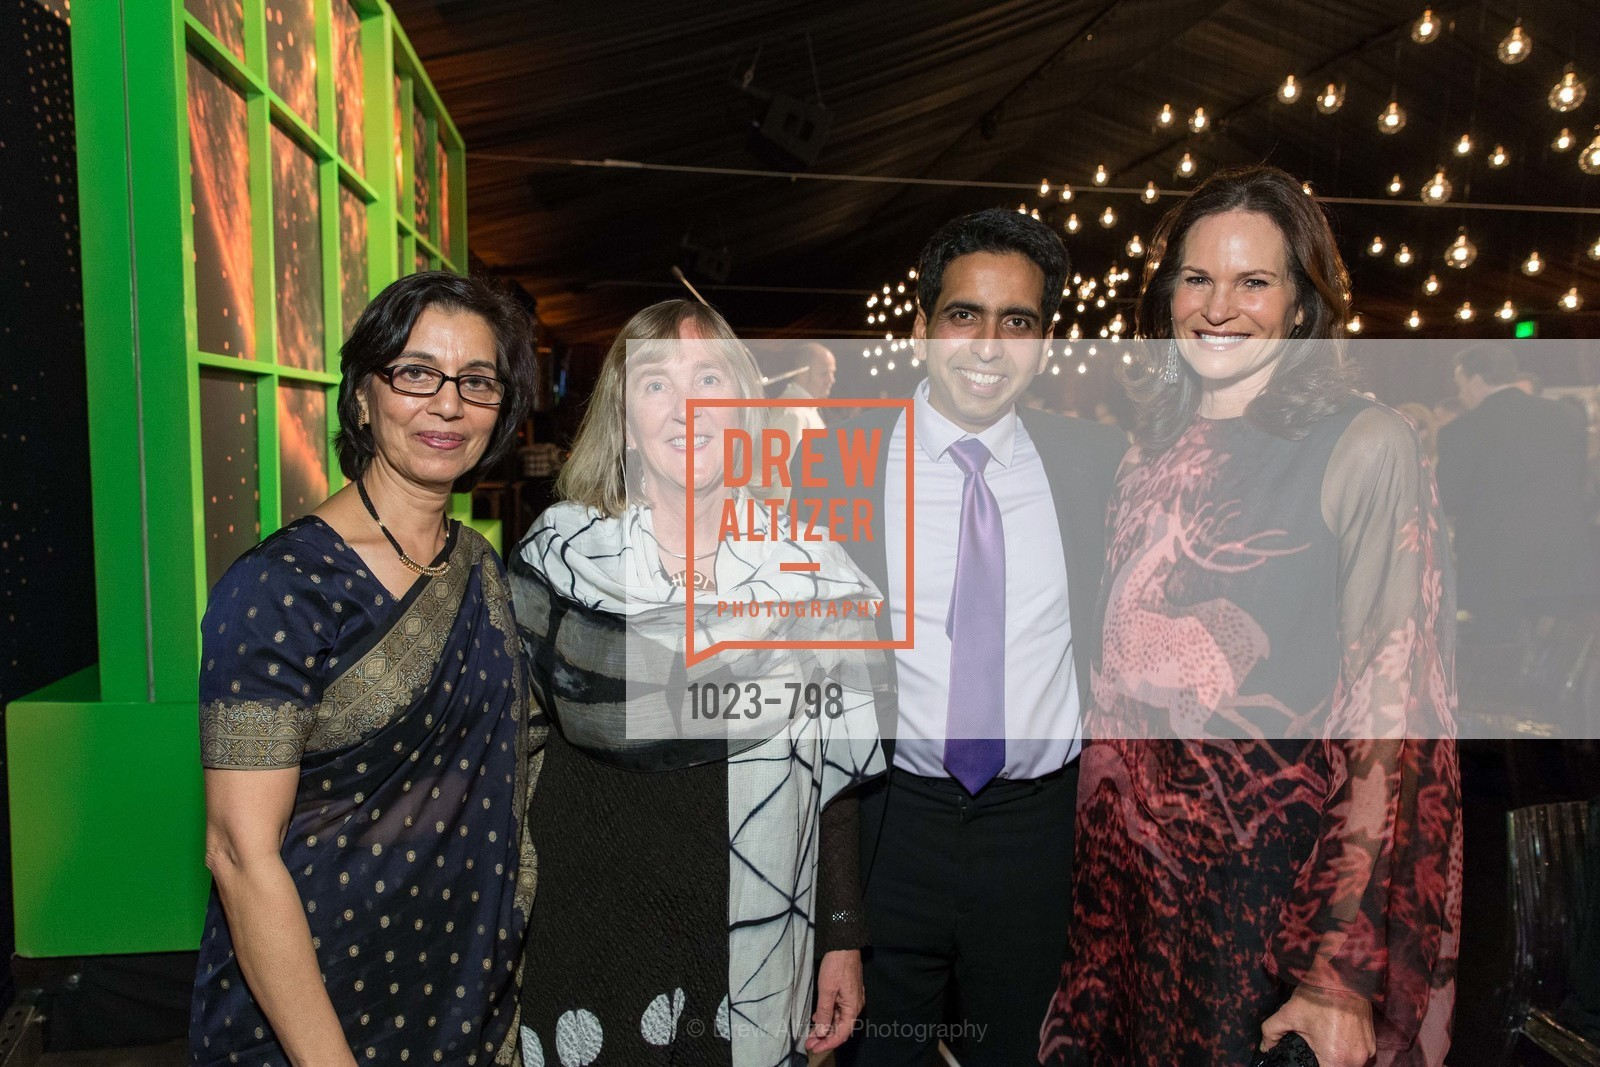 Naseem Marvi, Meg Lowman, Sal Khan, Randi Fisher, CALIFORNIA ACADEMY OF SCIENCES - Big Bang Gala 2015, US, April 23rd, 2015,Drew Altizer, Drew Altizer Photography, full-service agency, private events, San Francisco photographer, photographer california